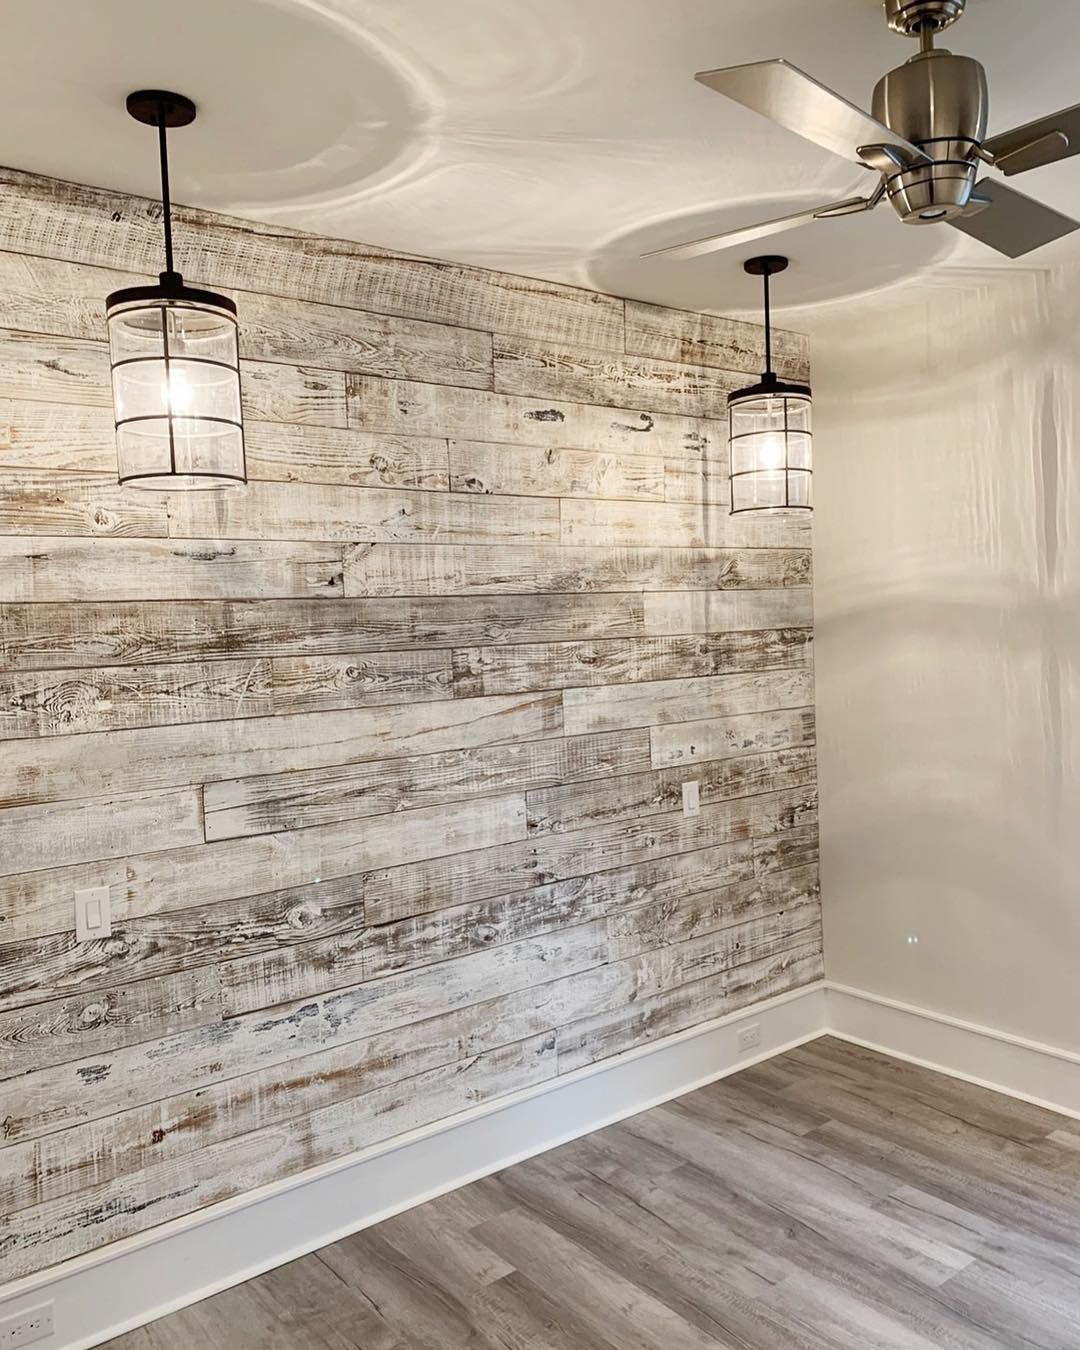 Two Different Reclaimed Wood Wall Designs. Which Is Your